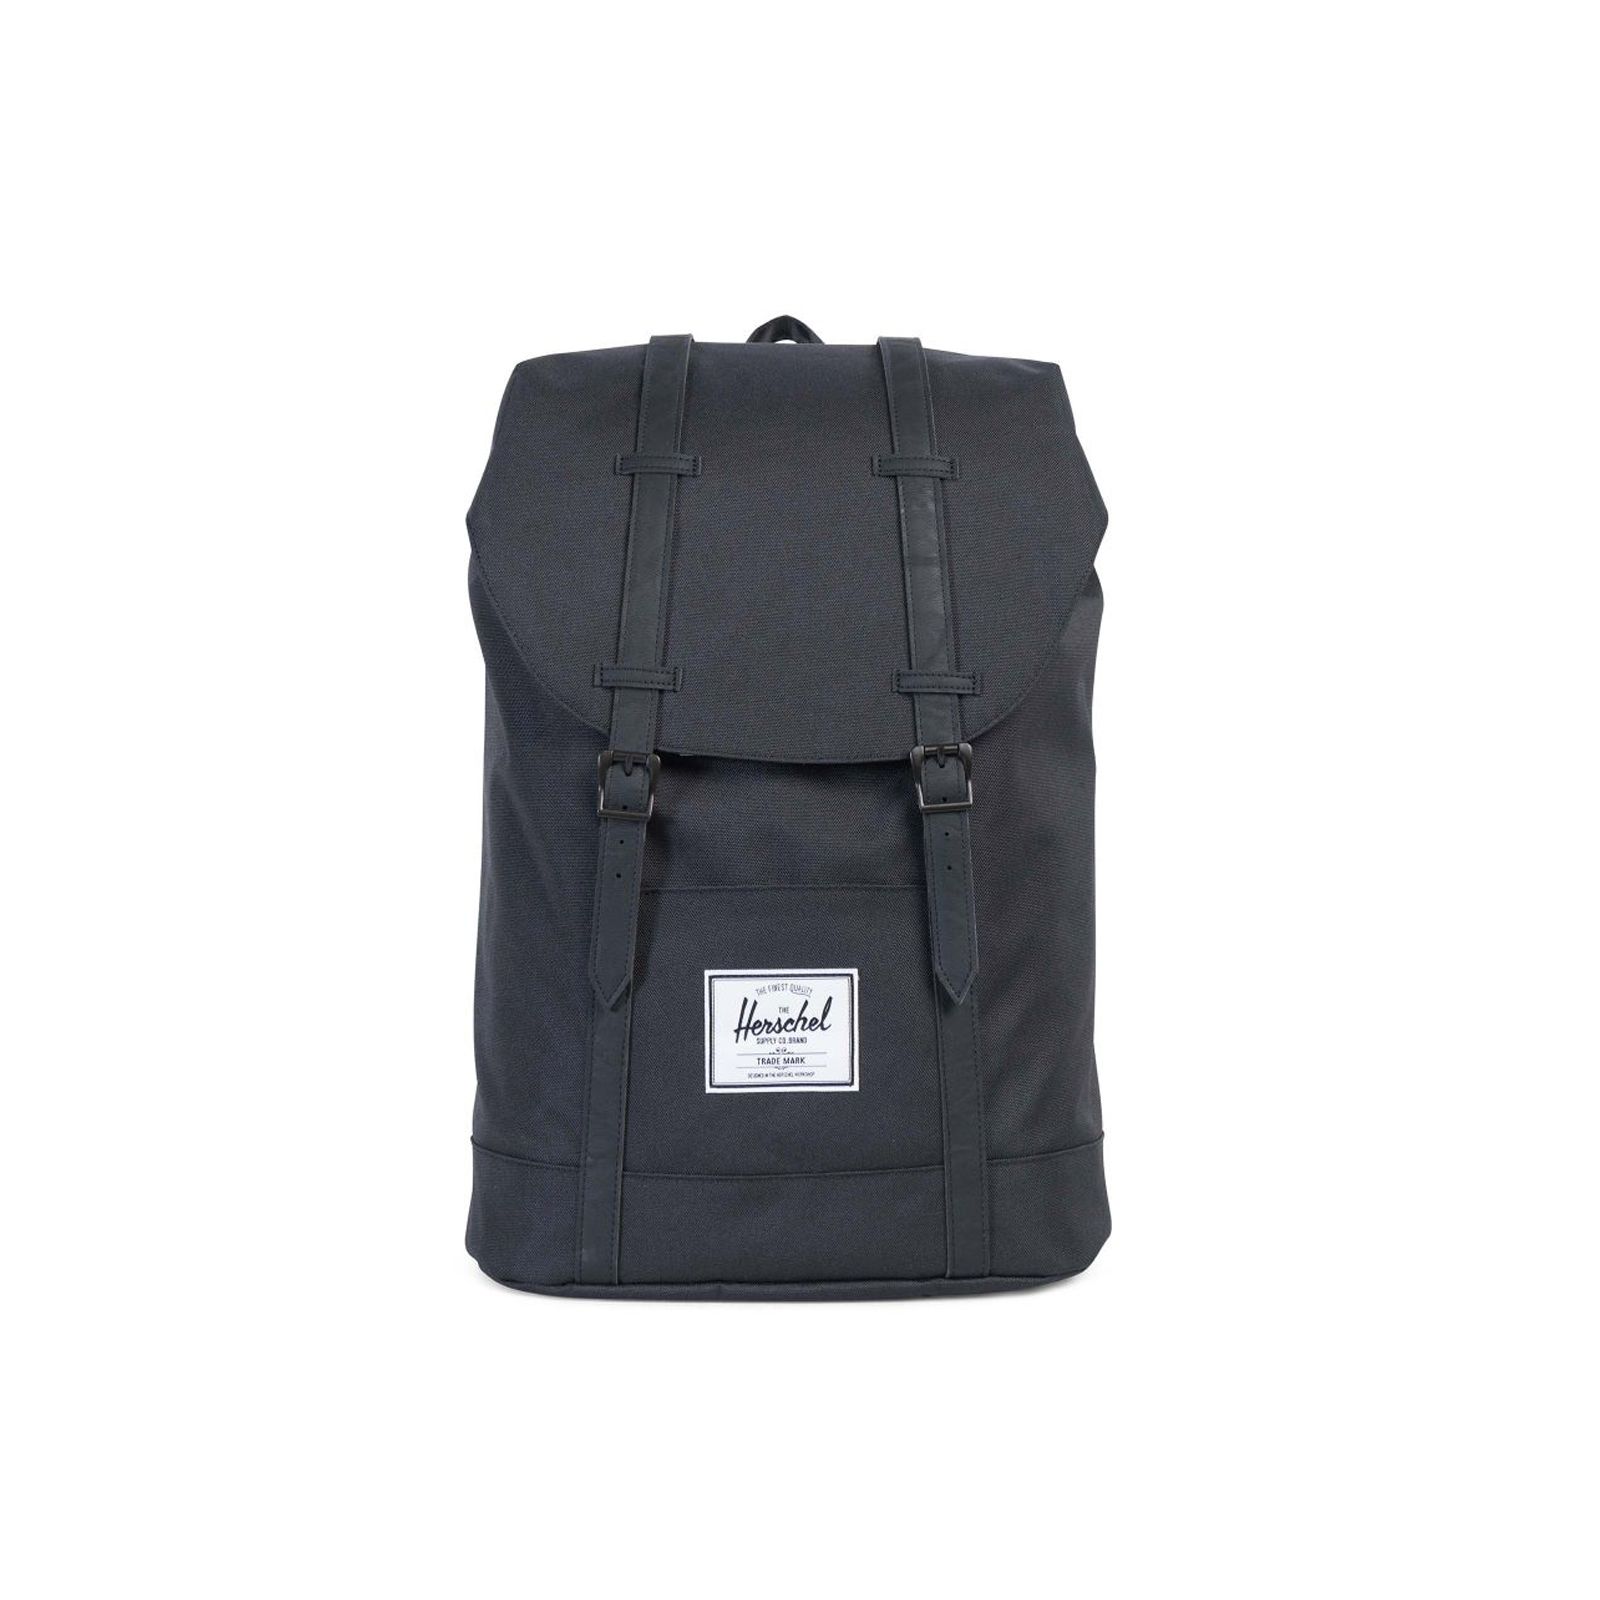 Herschel Laptoprucksack Retreat Black Black